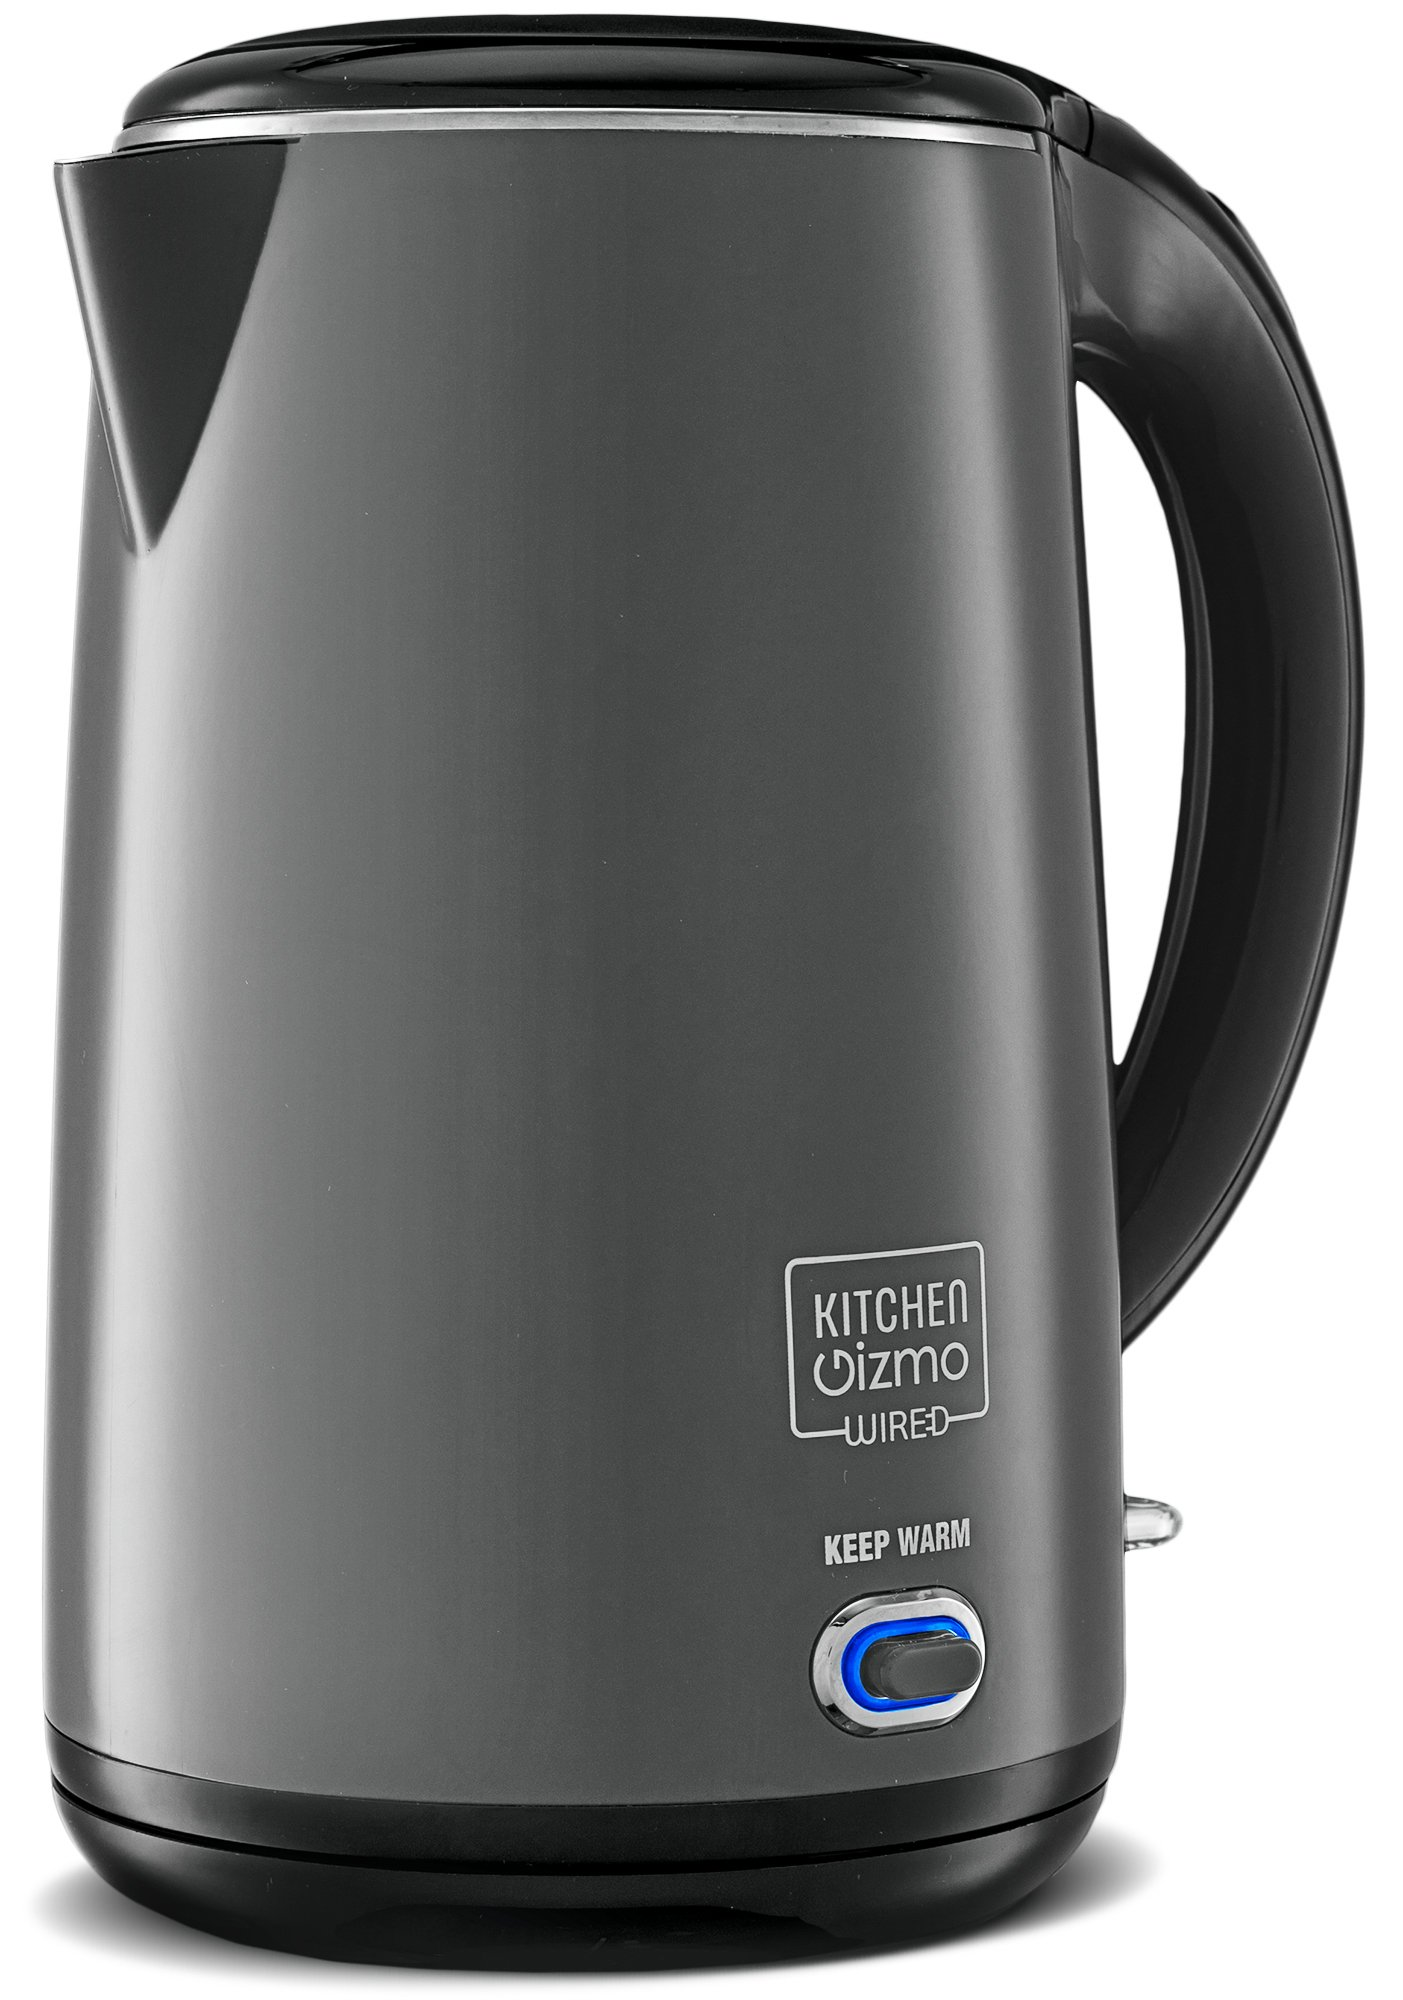 Kitchen Gizmo Stainless Steel Double-Walled Electric Kettle (Grey)